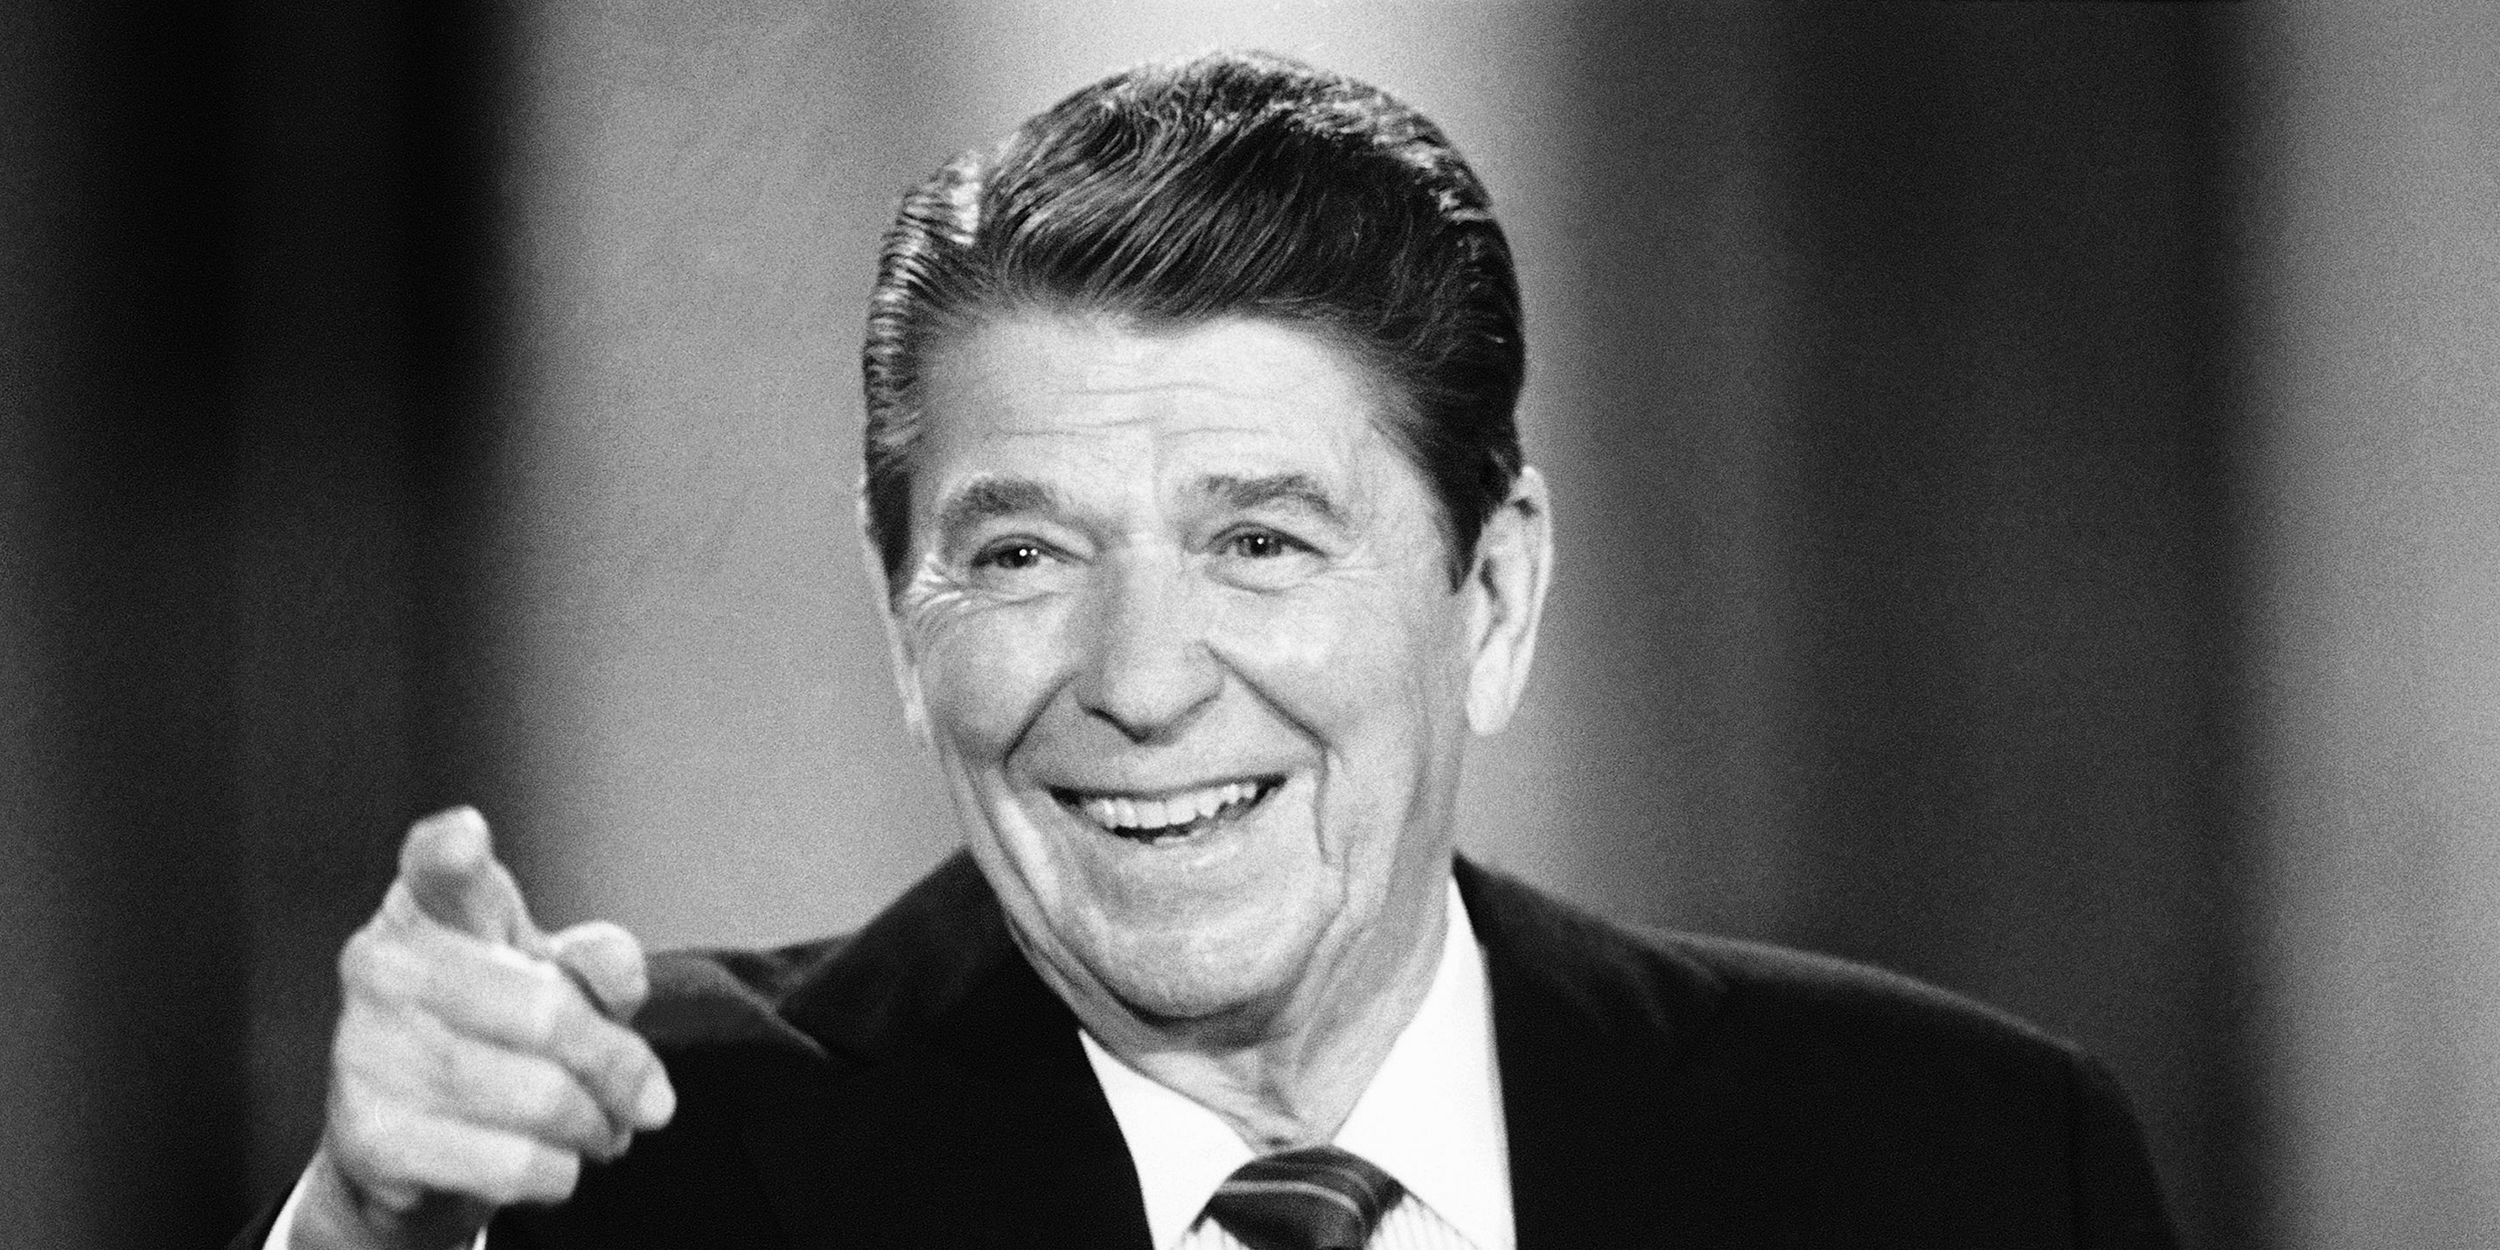 America is still reaping the consequences of what Ronald Reagan sowed